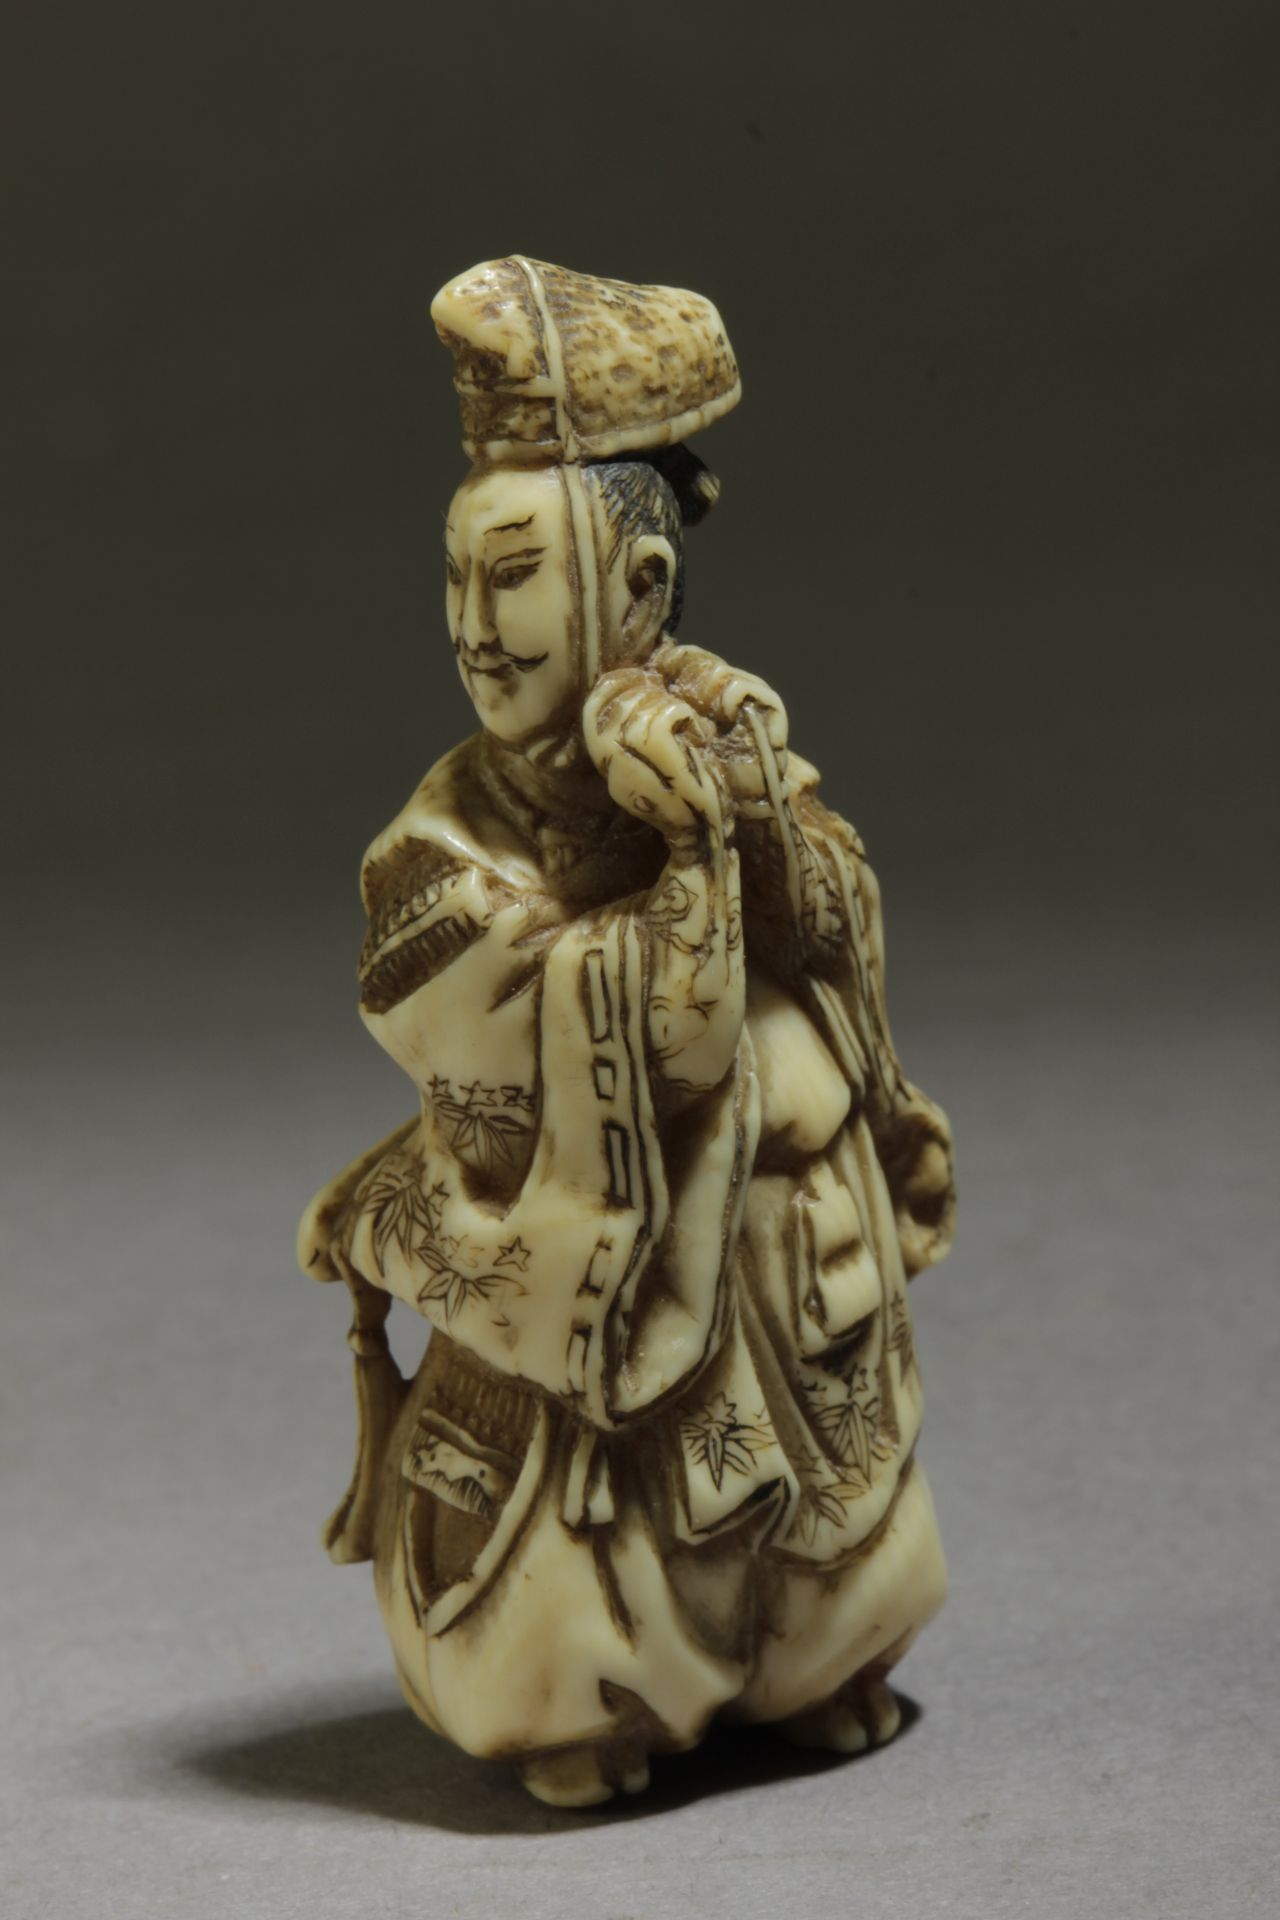 A 19th century Japanese netsuke from Edo period. Signed Shosai